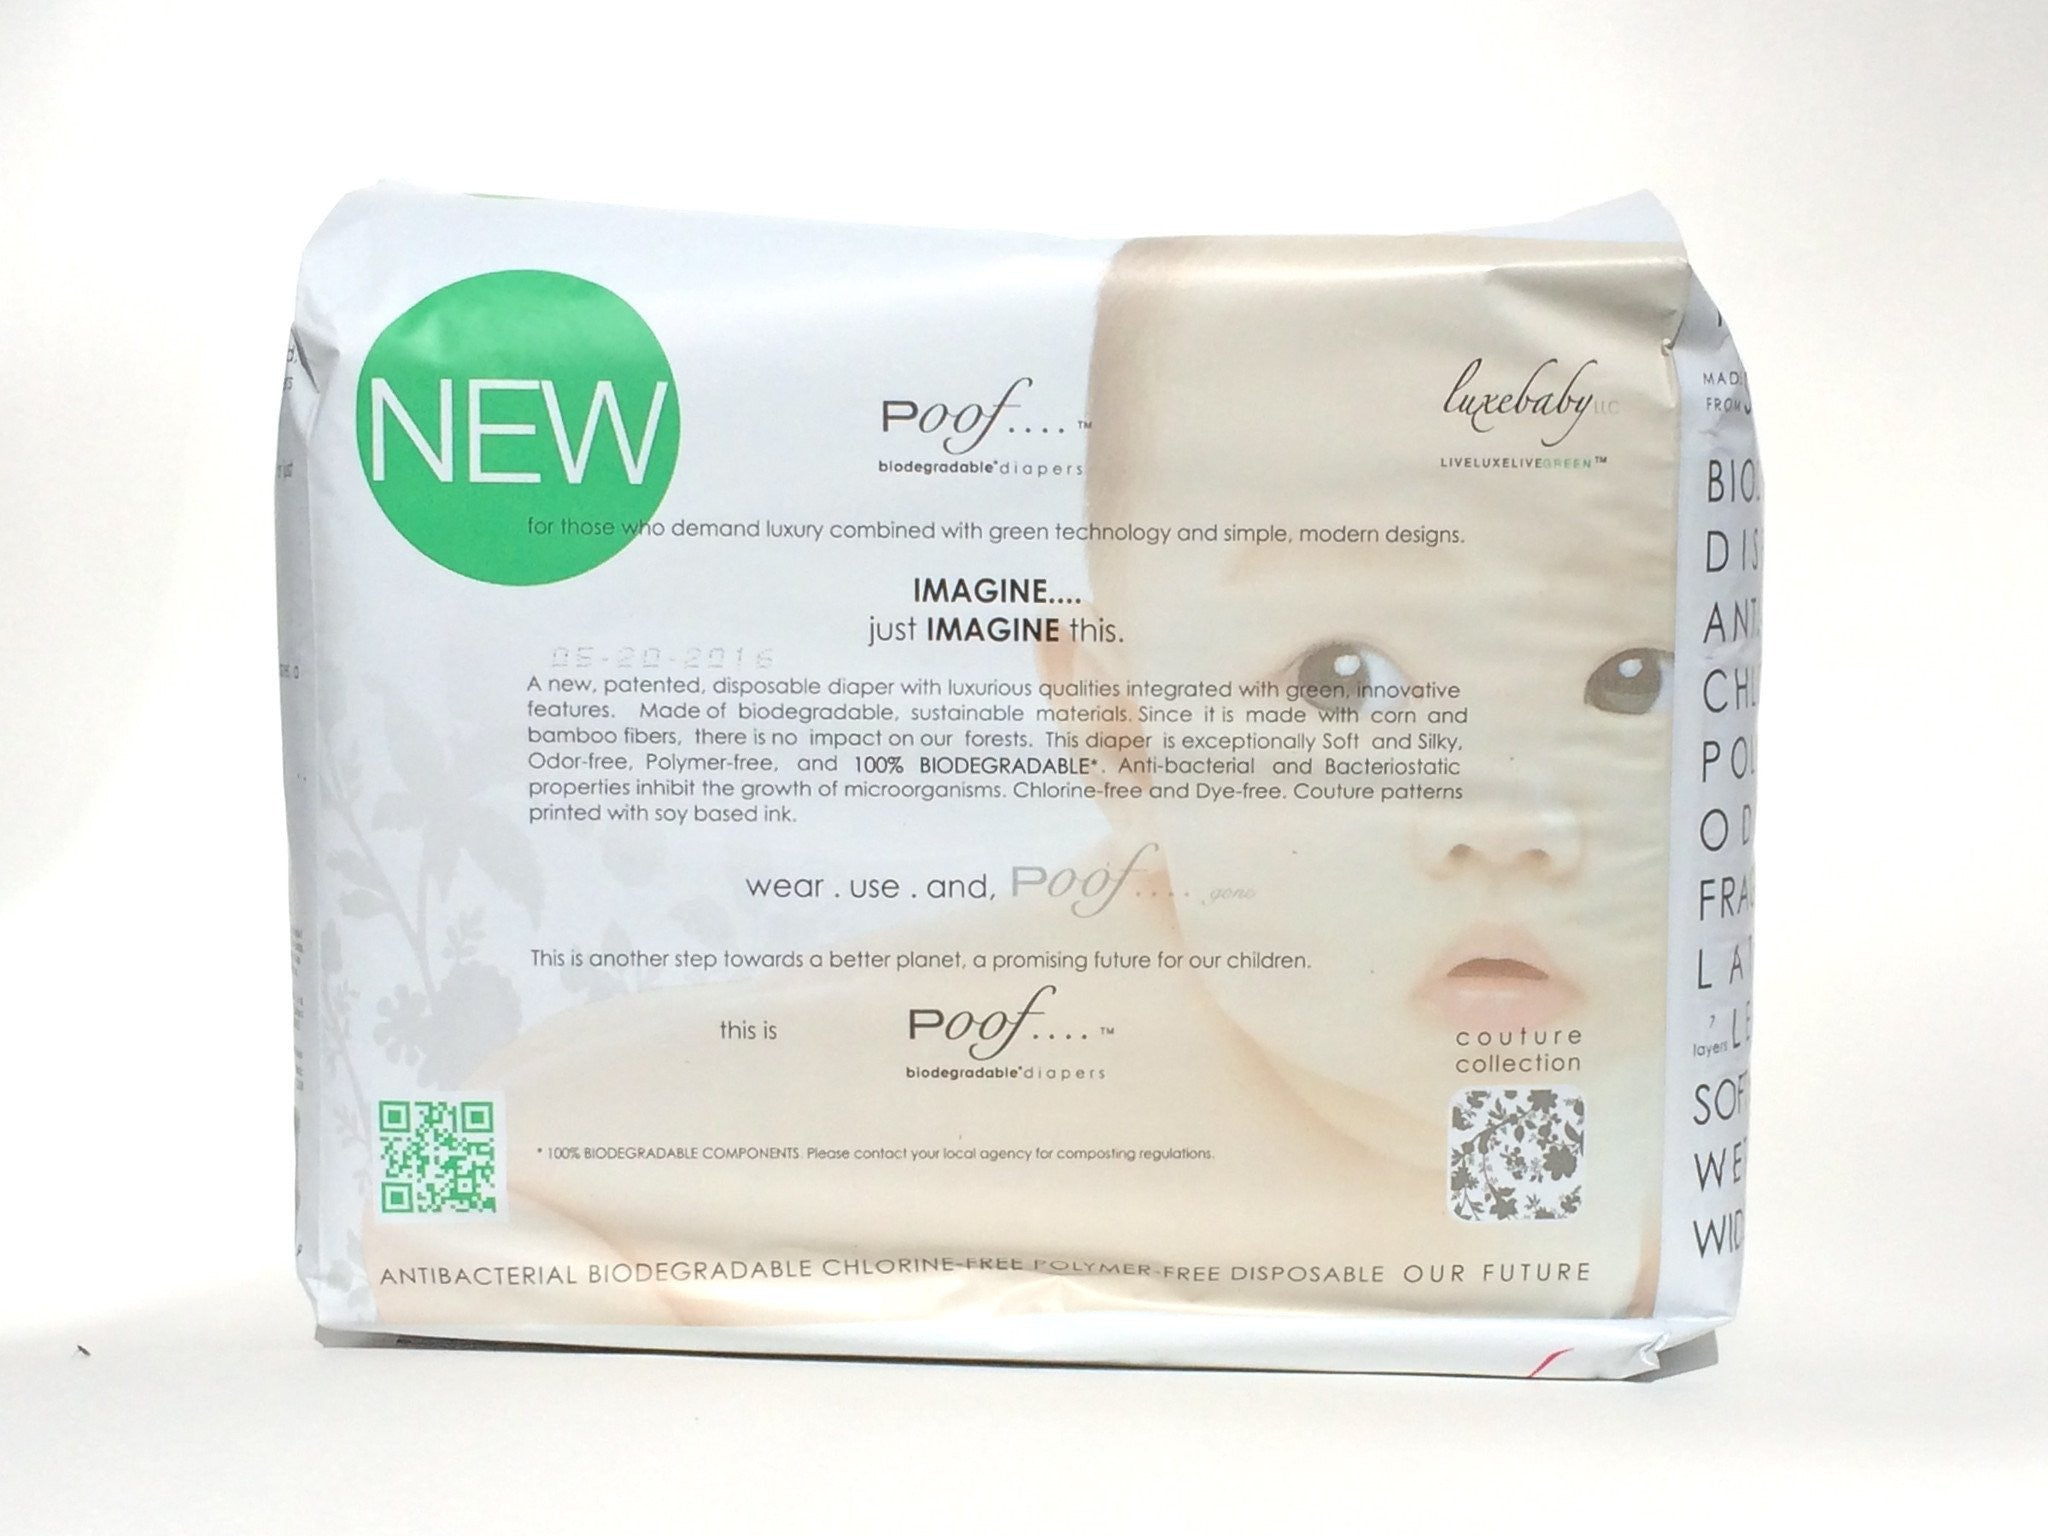 Poof SIZE 1 Taupe Chinoiserie Biodegradable DIAPERS